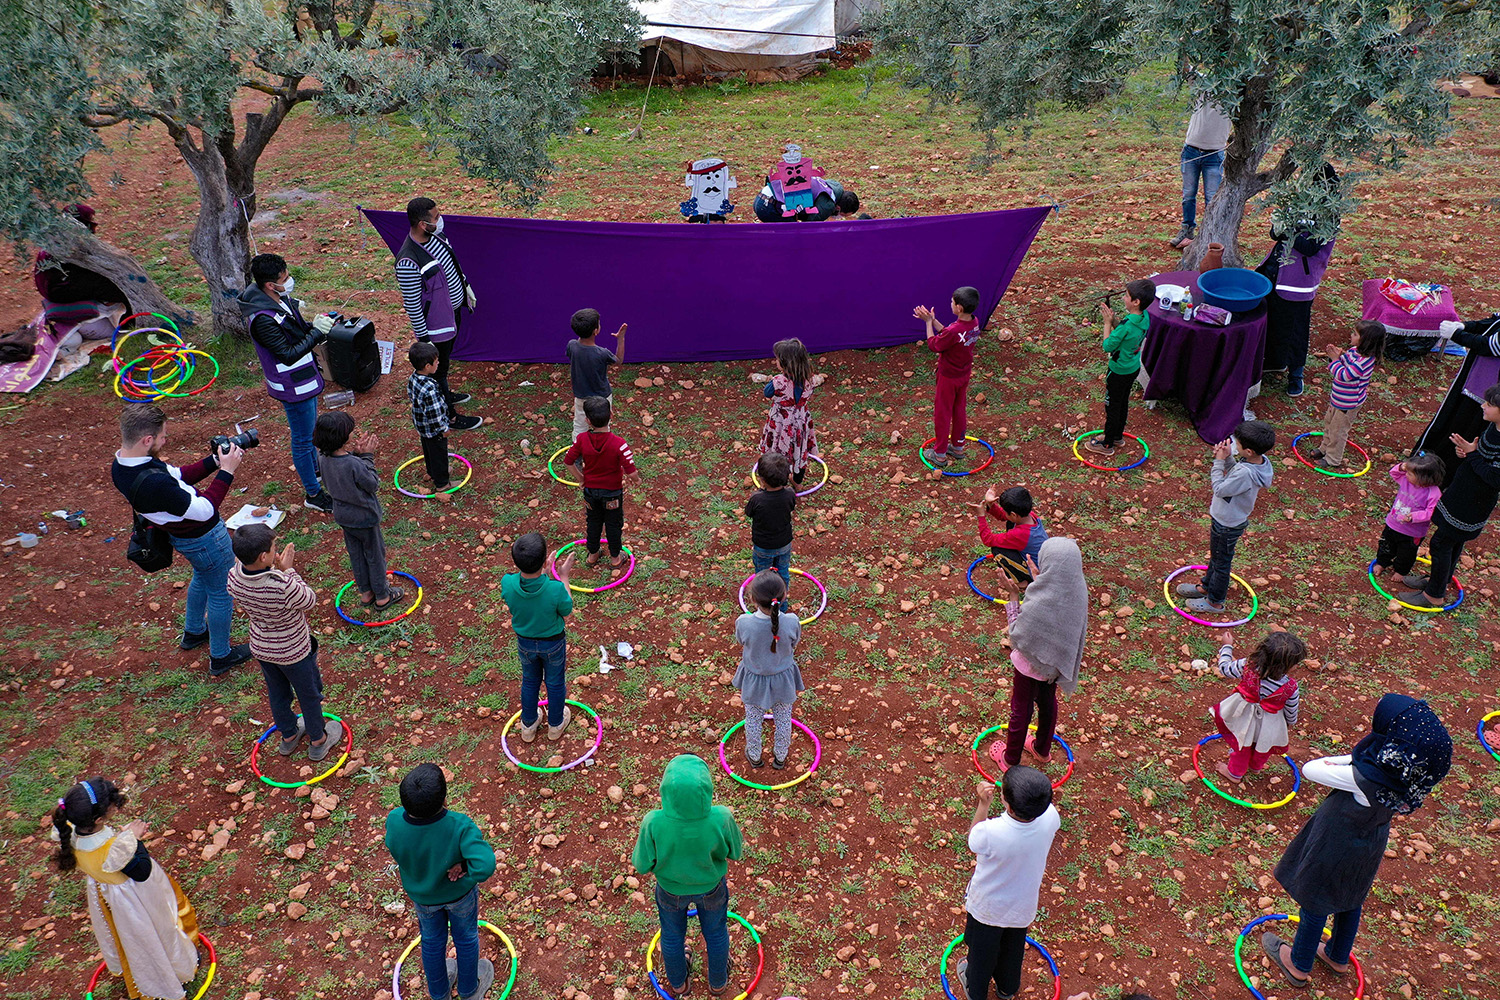 Volunteers perform a puppet show for children in a camp for displaced Syrians in the village of Kafr Yahmul, Syria, on April 7. The purpose of the show was to teach children about the coronavirus and the methods used to limit its spread. OMAR HAJ KADOUR/AFP via Getty Images